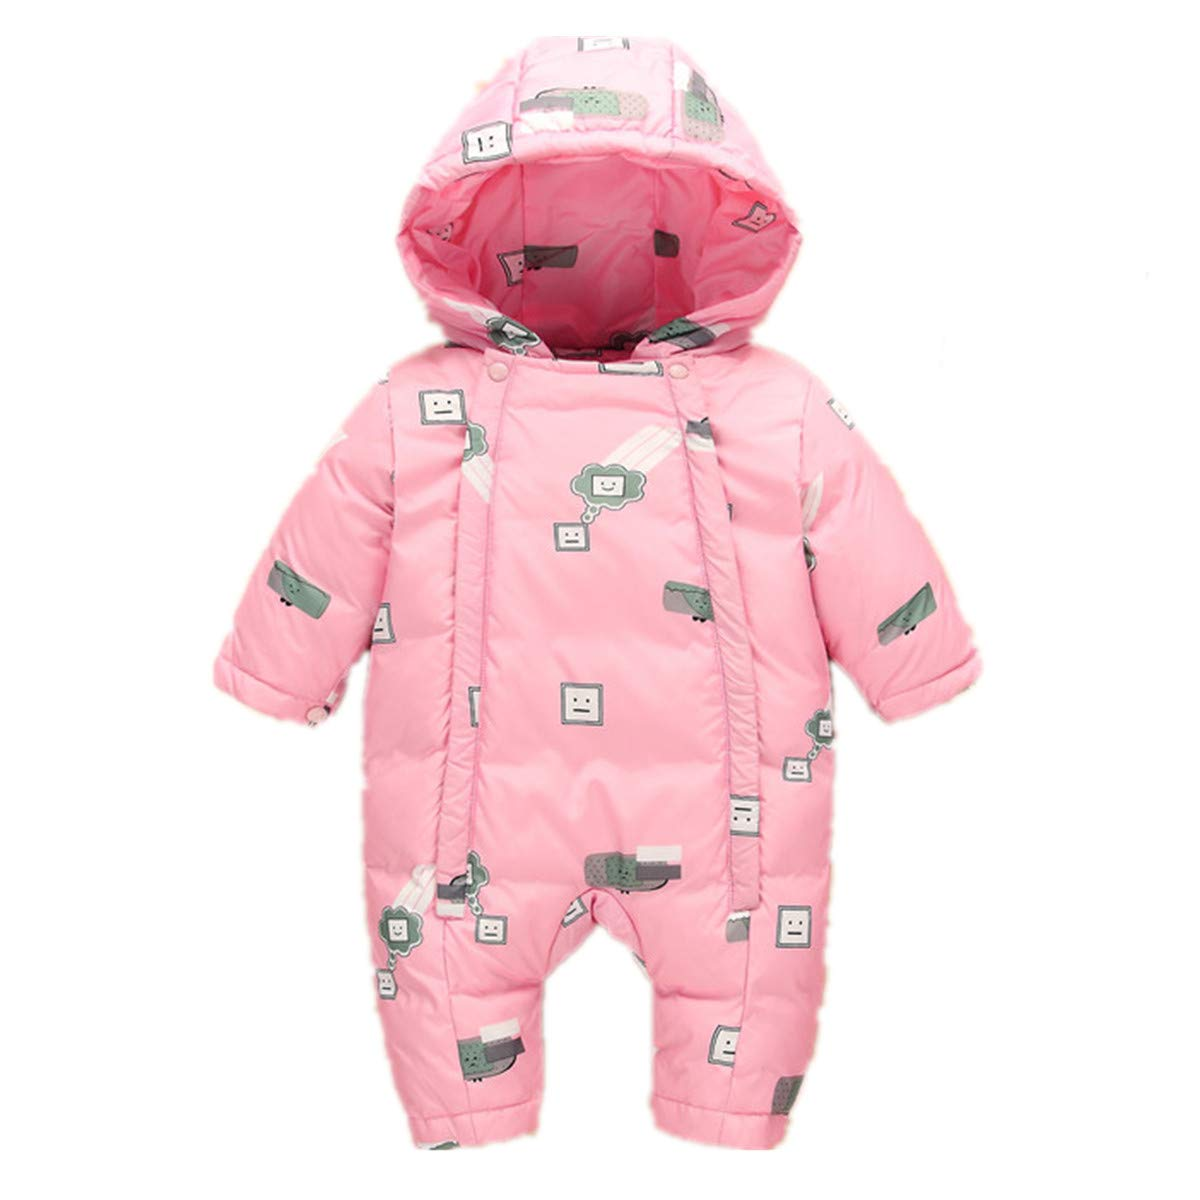 LJYH Baby Winter 3 Piece All in One Hooded Snowsuit Thick Down Jumpsuit Puffer Romper